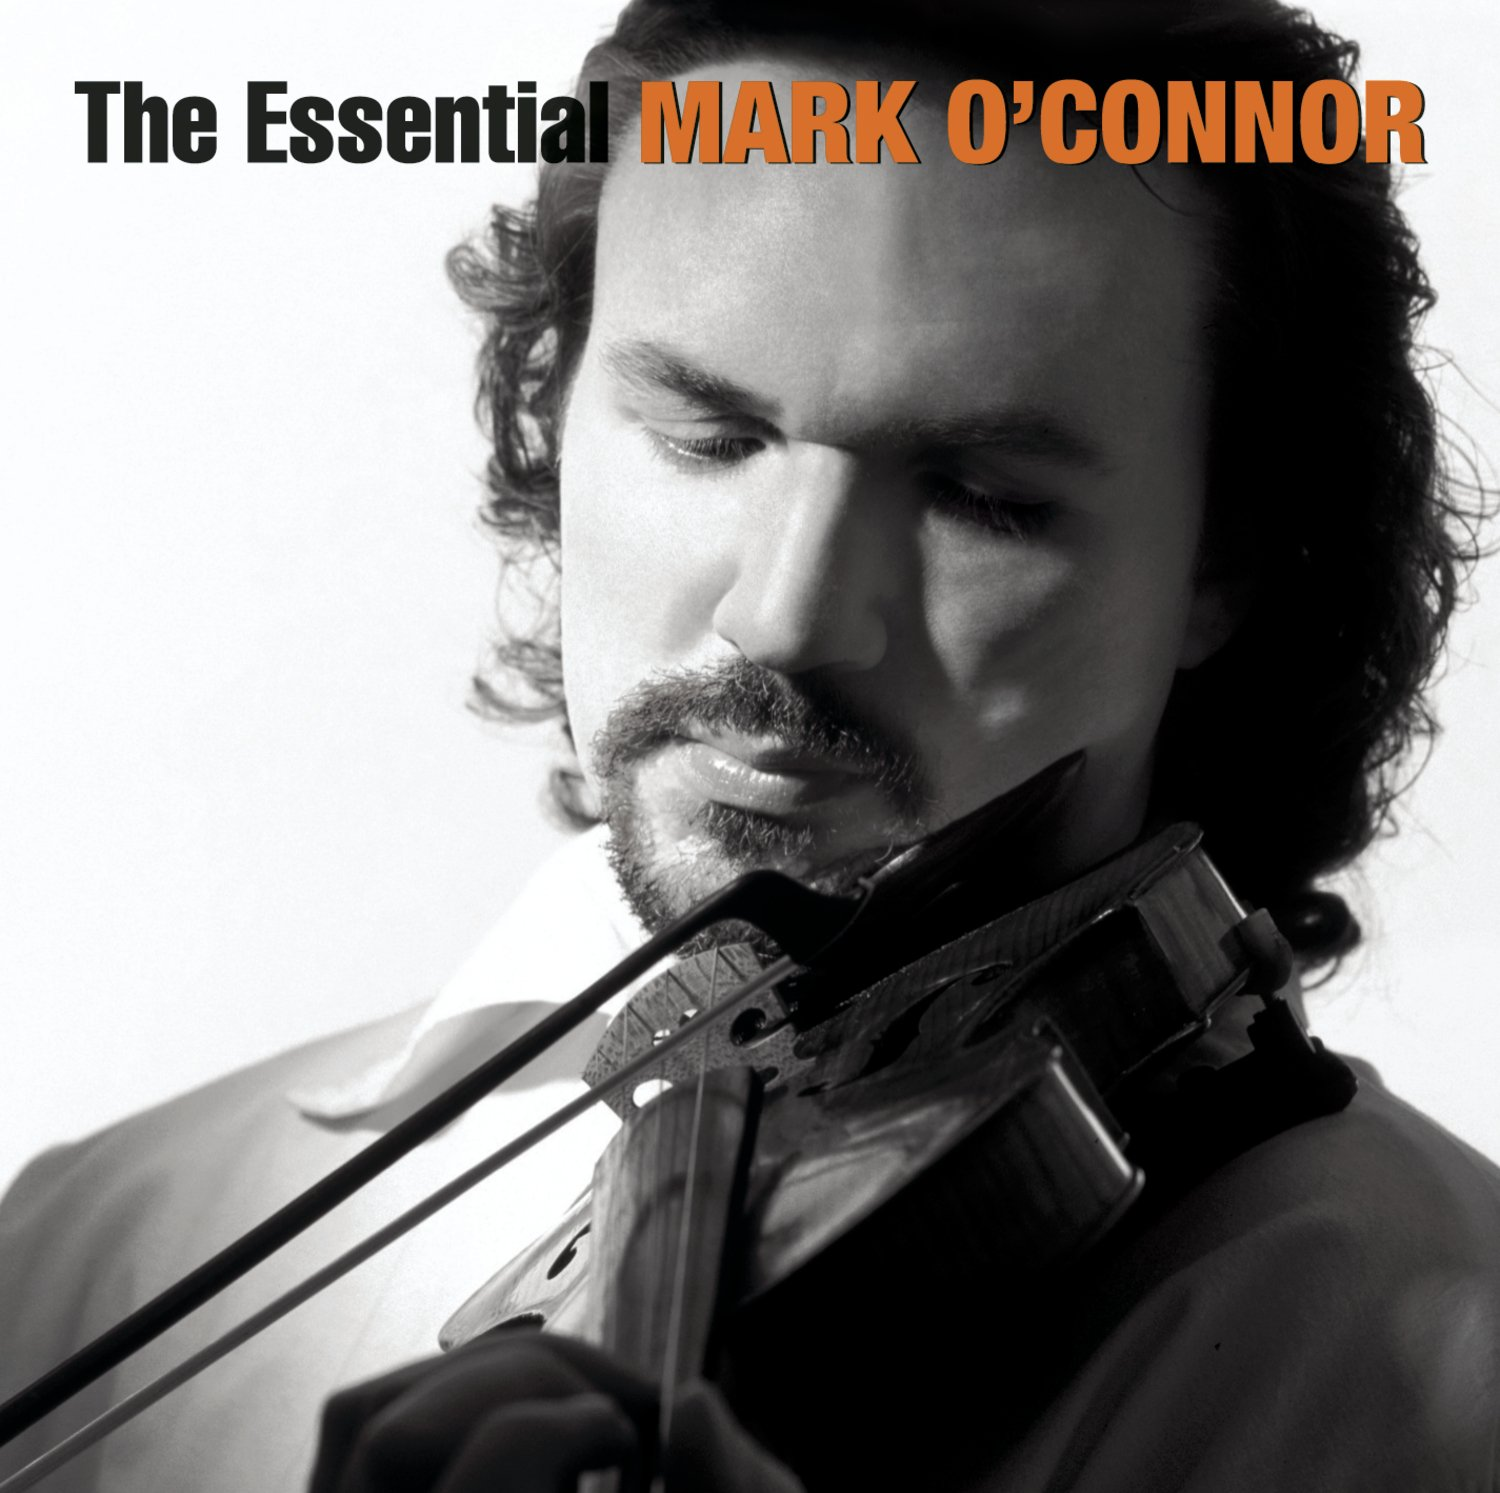 The Essential Mark O'Connor by Sony Classical